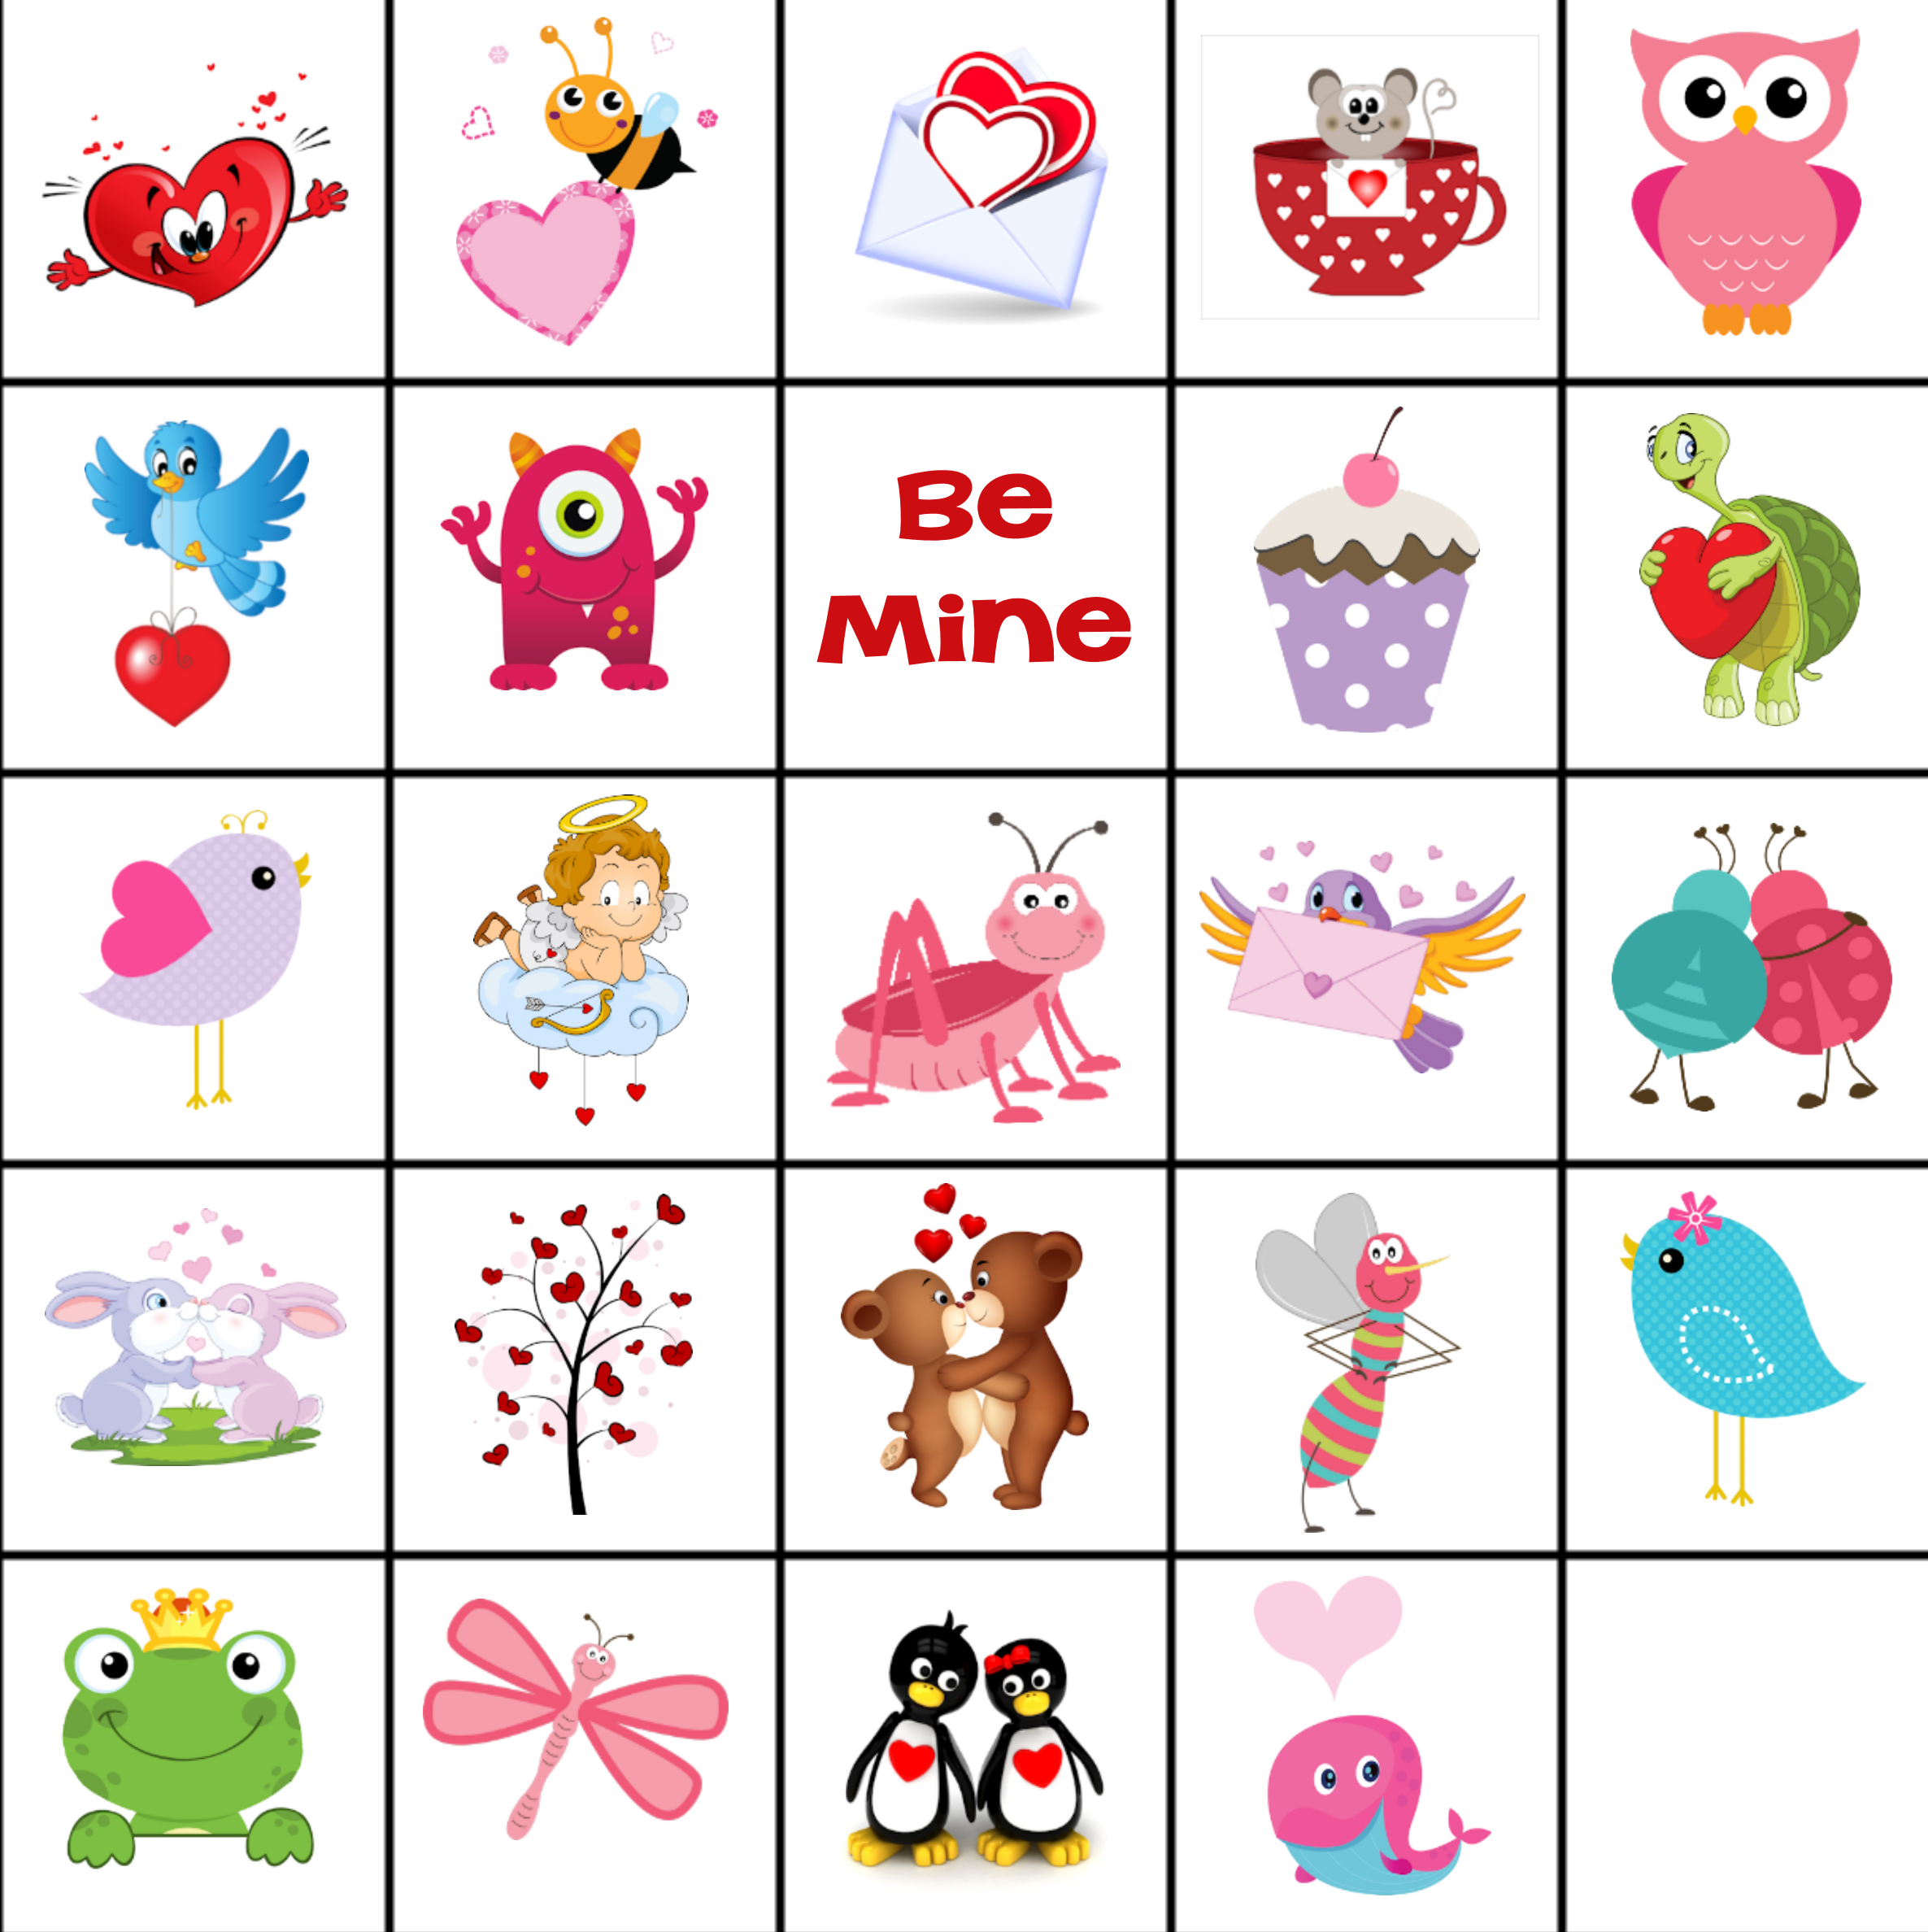 free printable valentine memory game vday party 2015 pinterest free printable. Black Bedroom Furniture Sets. Home Design Ideas